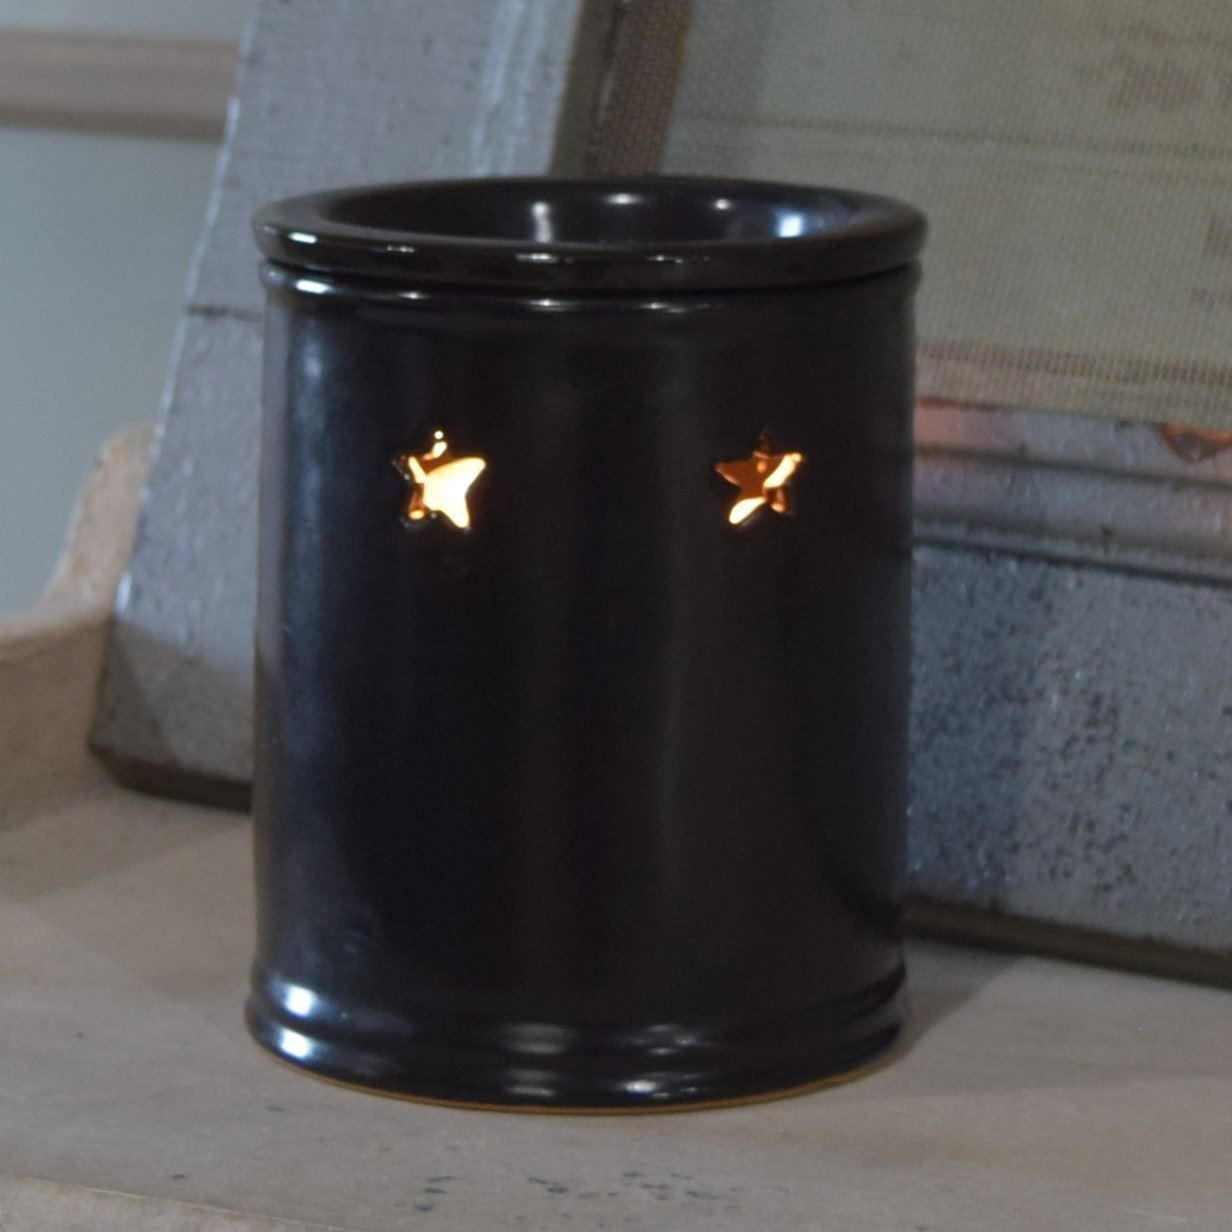 Black Star Electric Wax Warmer by 1803 Candles